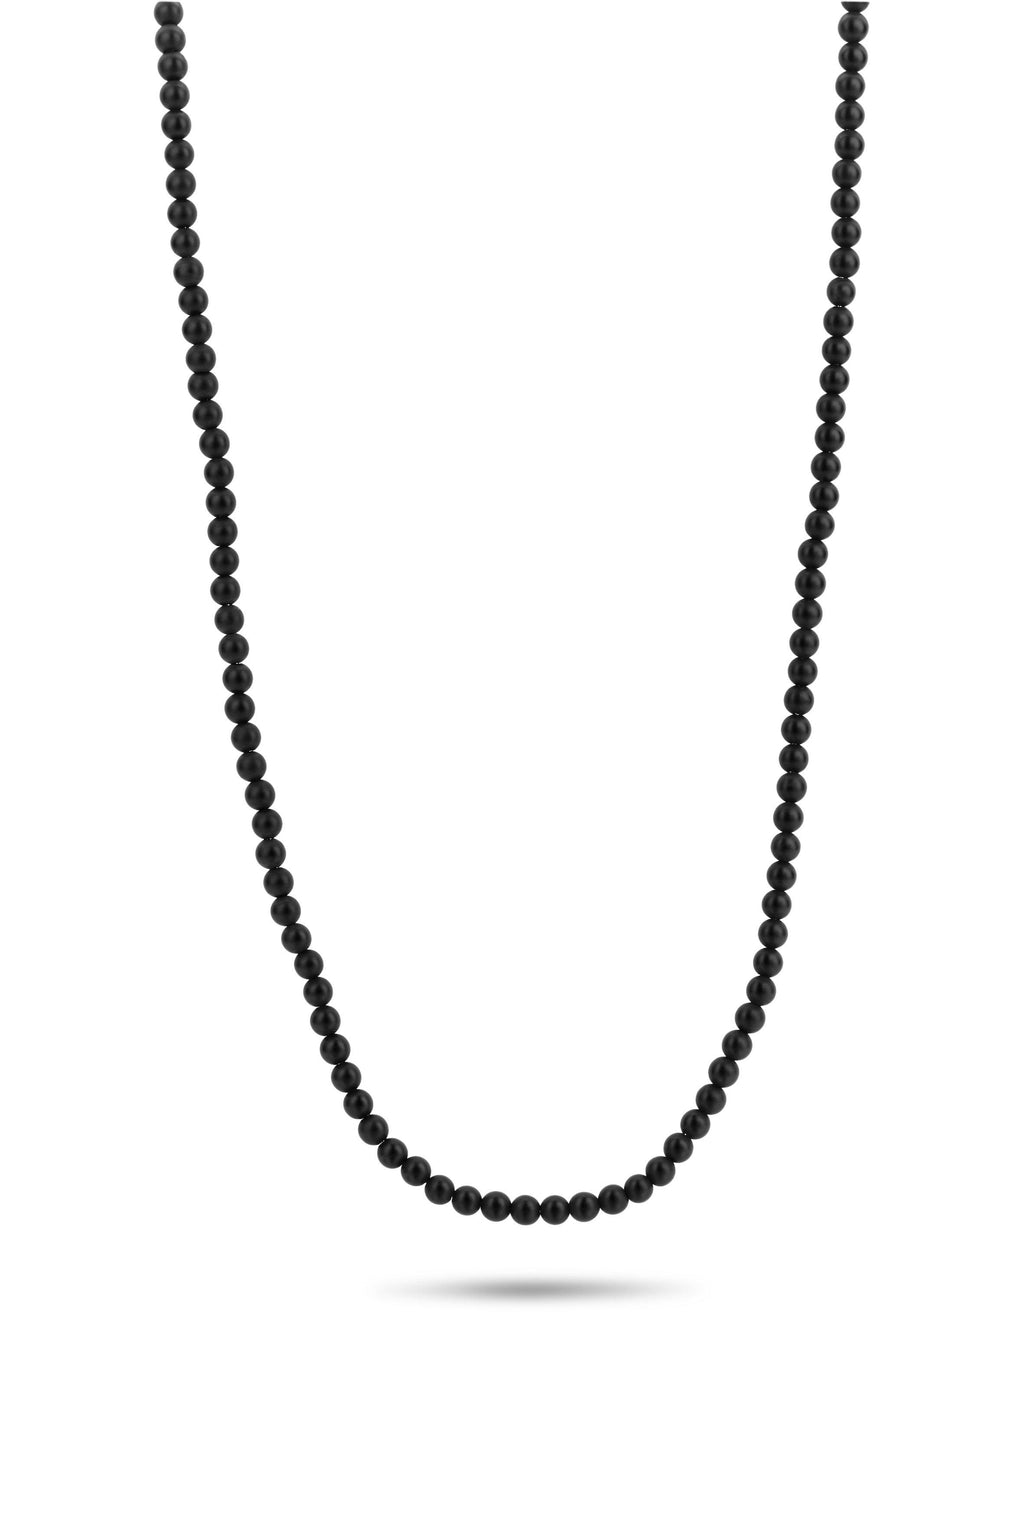 7FN-0009, Necklace - Men's Bracelet Homme, Frank1967